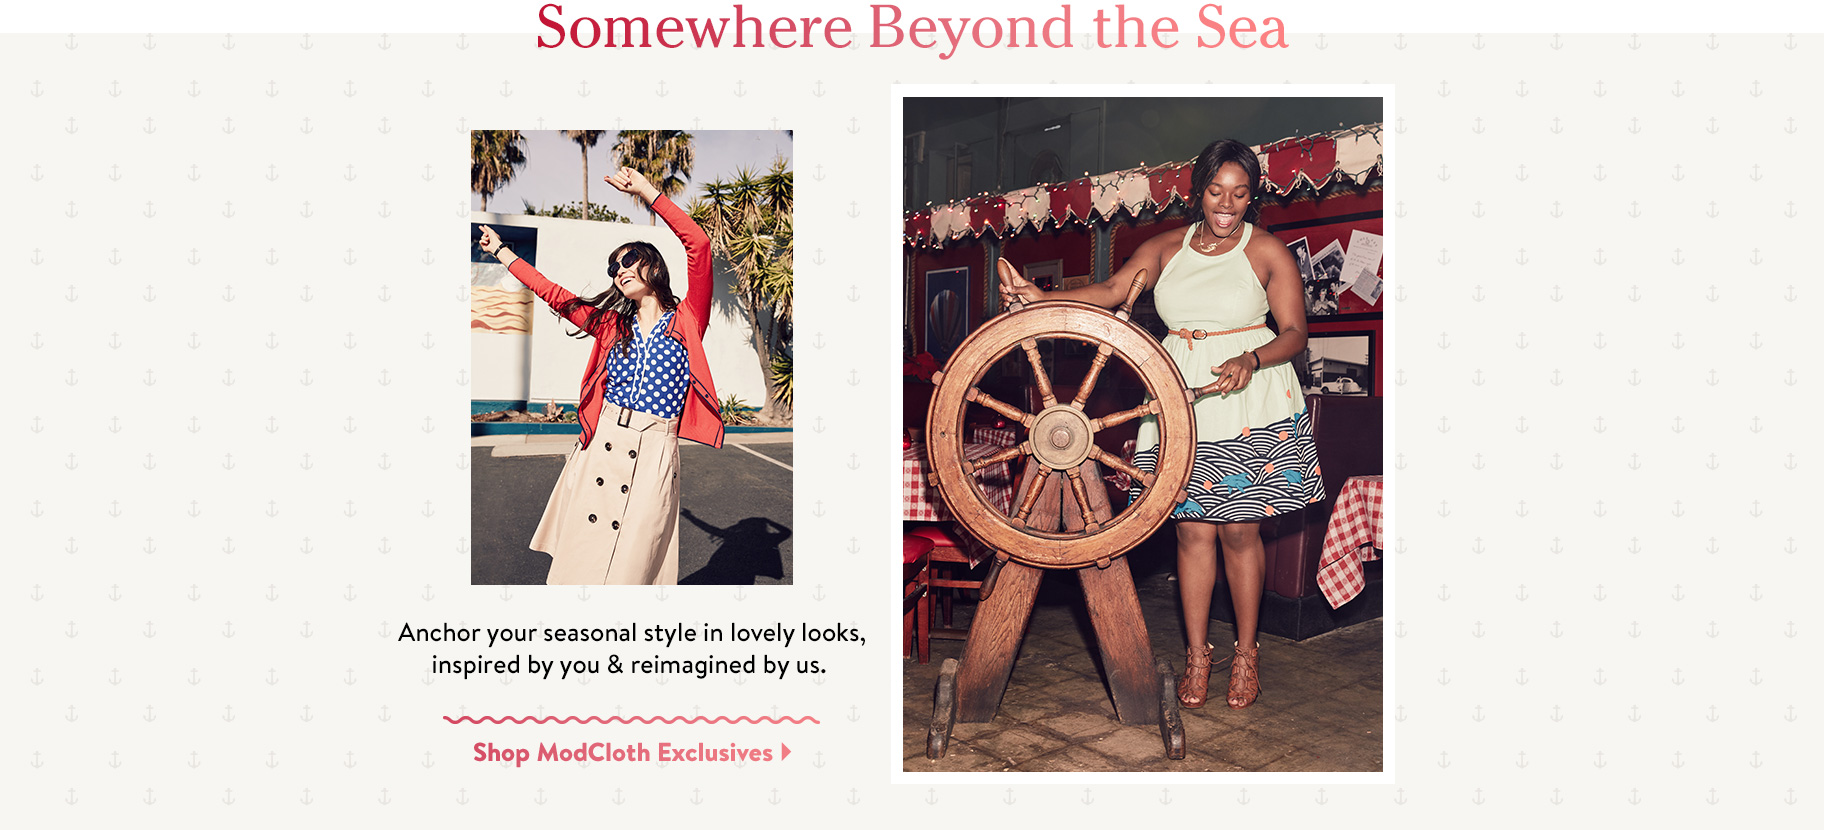 Somewhere Beyond the Sea. Anchor your seasonal style in lovely looks, inspired by you & reimagined by us. Shop ModCloth Exclusives.